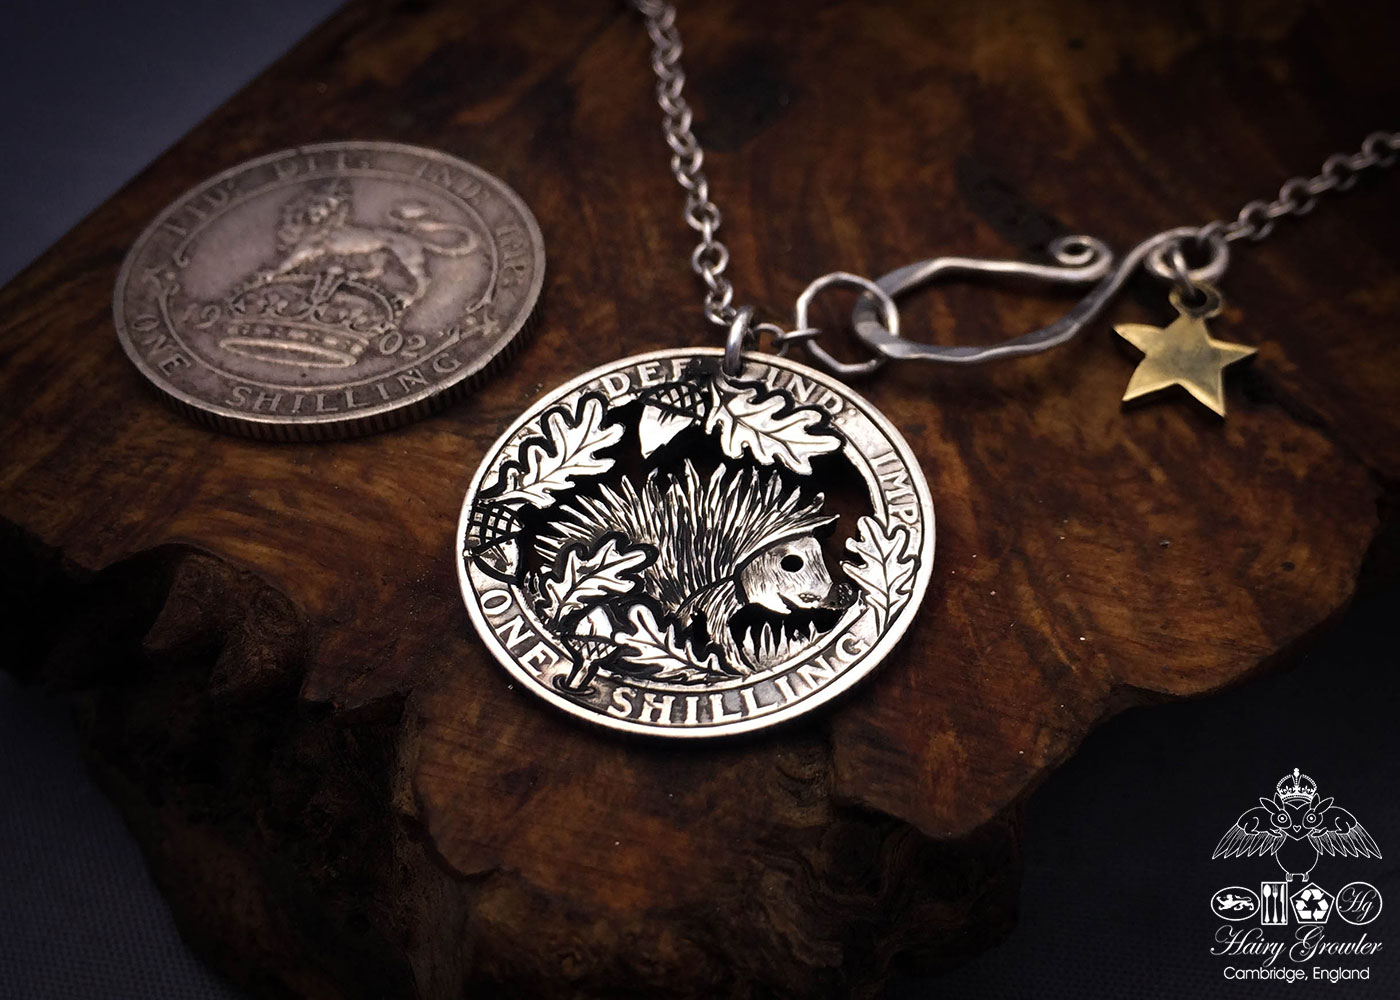 Handmade and recycled silver shilling The Silver Shilling collection. silver hedgehog necklace totally handcrafted and recycled from old sterling silver shilling coins. Designed and created by Hairy Growler Jewellery, Cambridge, UK. necklace